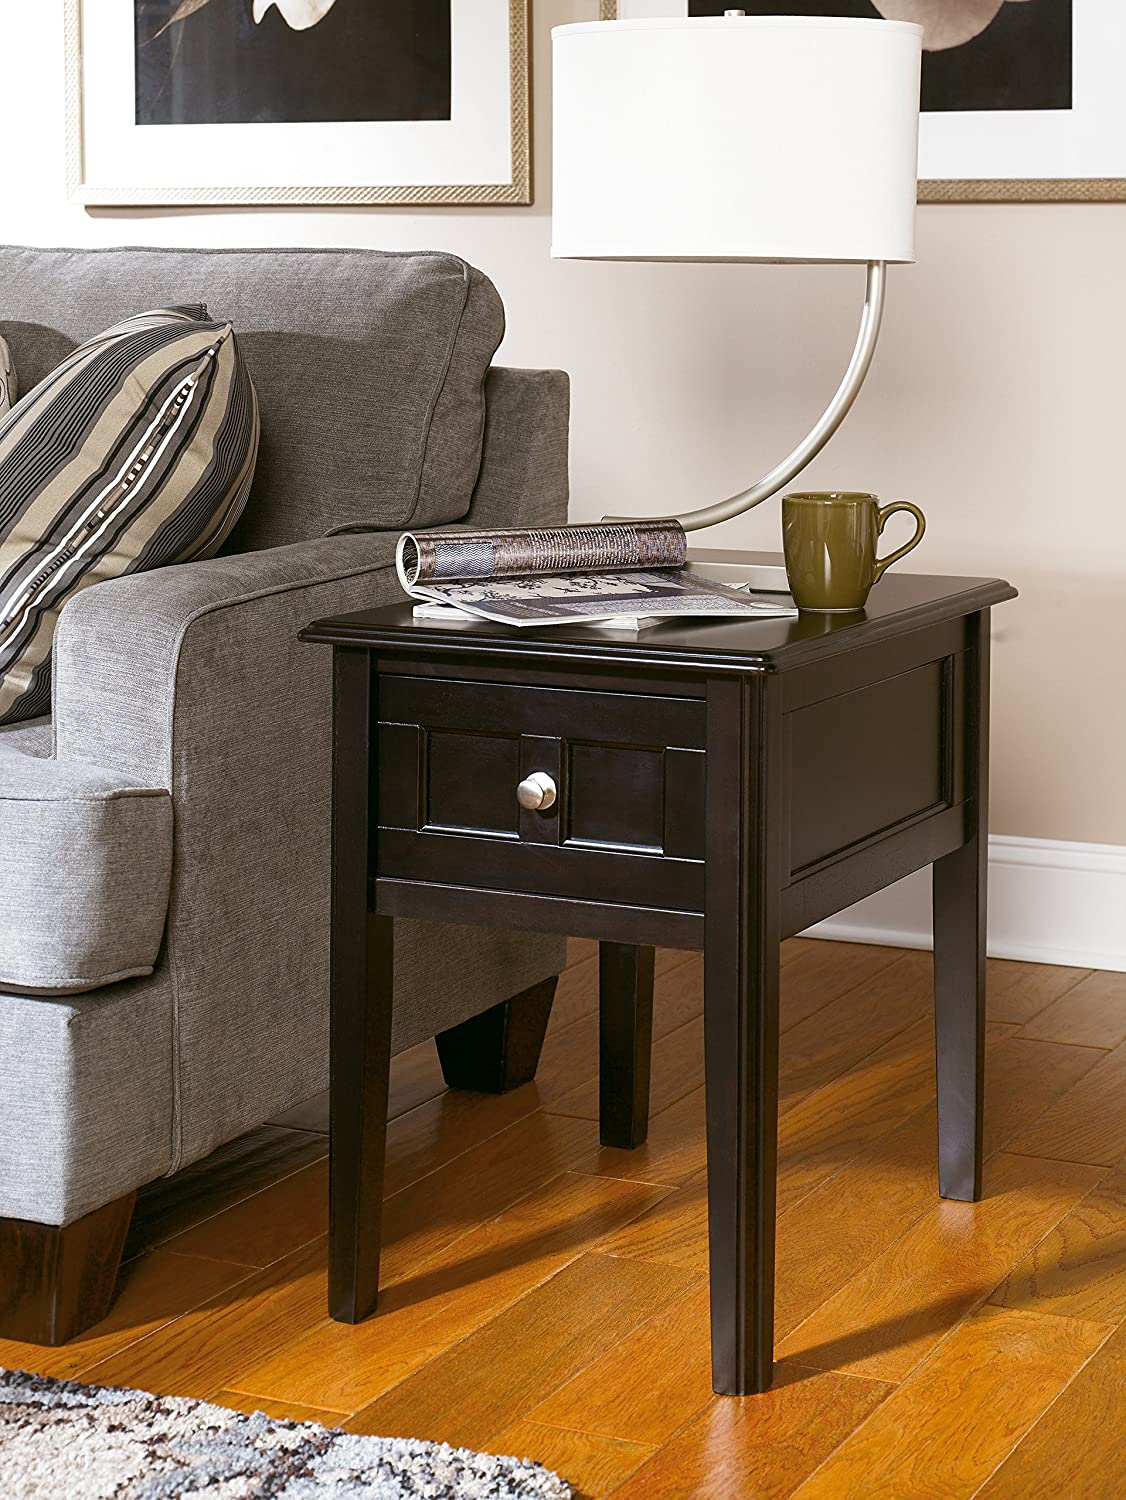 Ashley Furniture Signature Design - Henning Chair Side End Table - 1 Drawer - Contemporary - Almost Black Finish